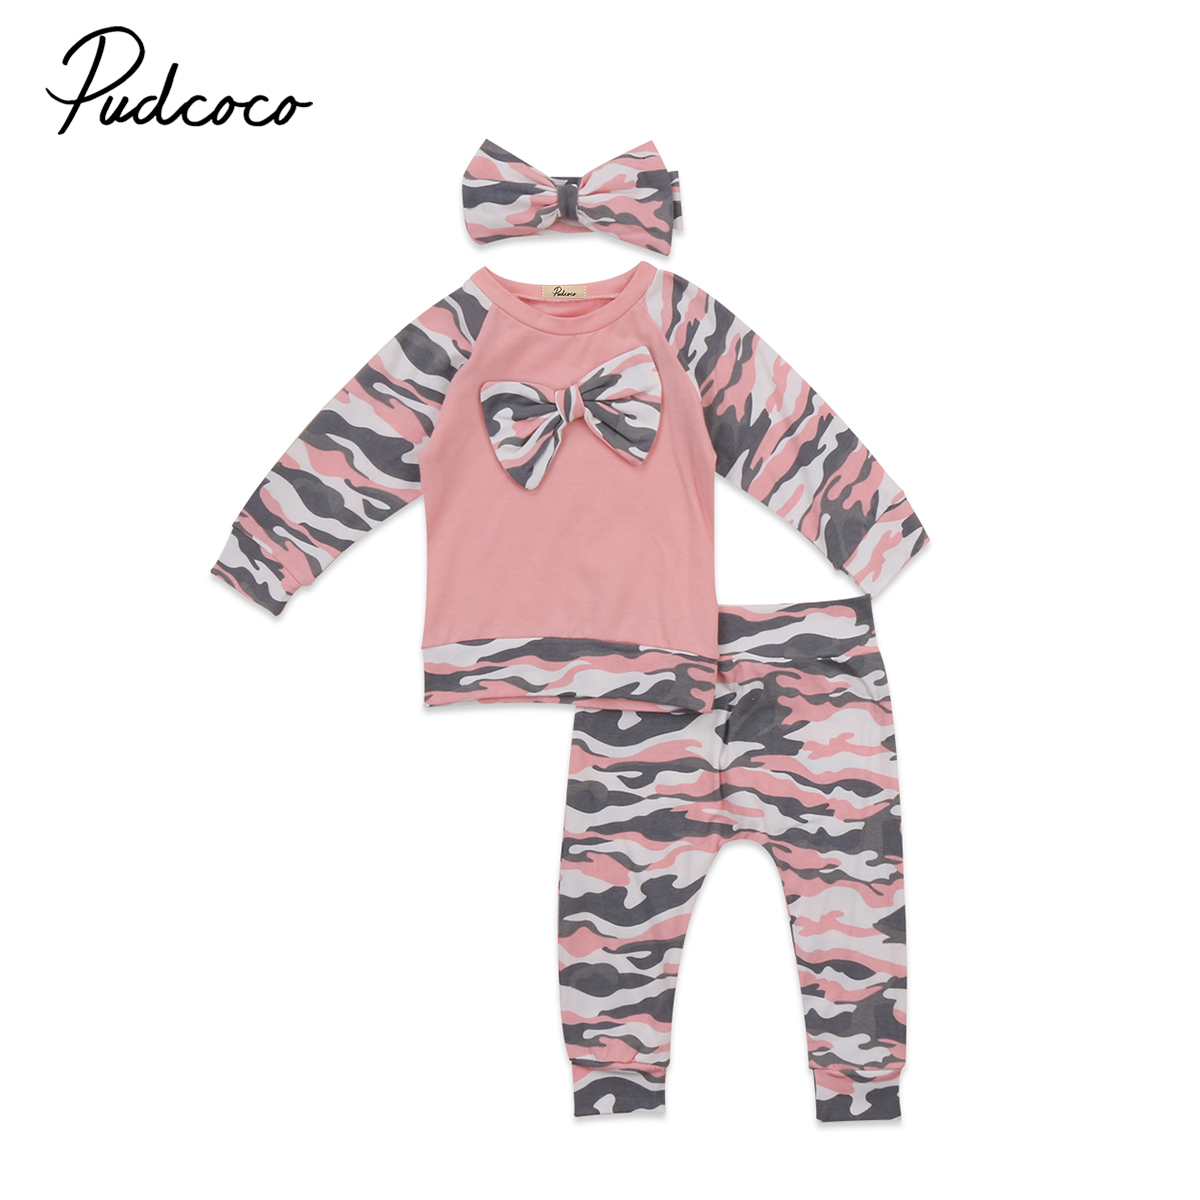 2017 New Brand Toddler Infant Newborn Kids Baby girl T-shirt Long Sleeve Tops Pants Headband 3Pcs Outfits Set Pink Camo Clothes newborn toddler baby boy girl camo t shirt tops pants outfits set clothes 0 24m cotton casual short sleeve kids sets